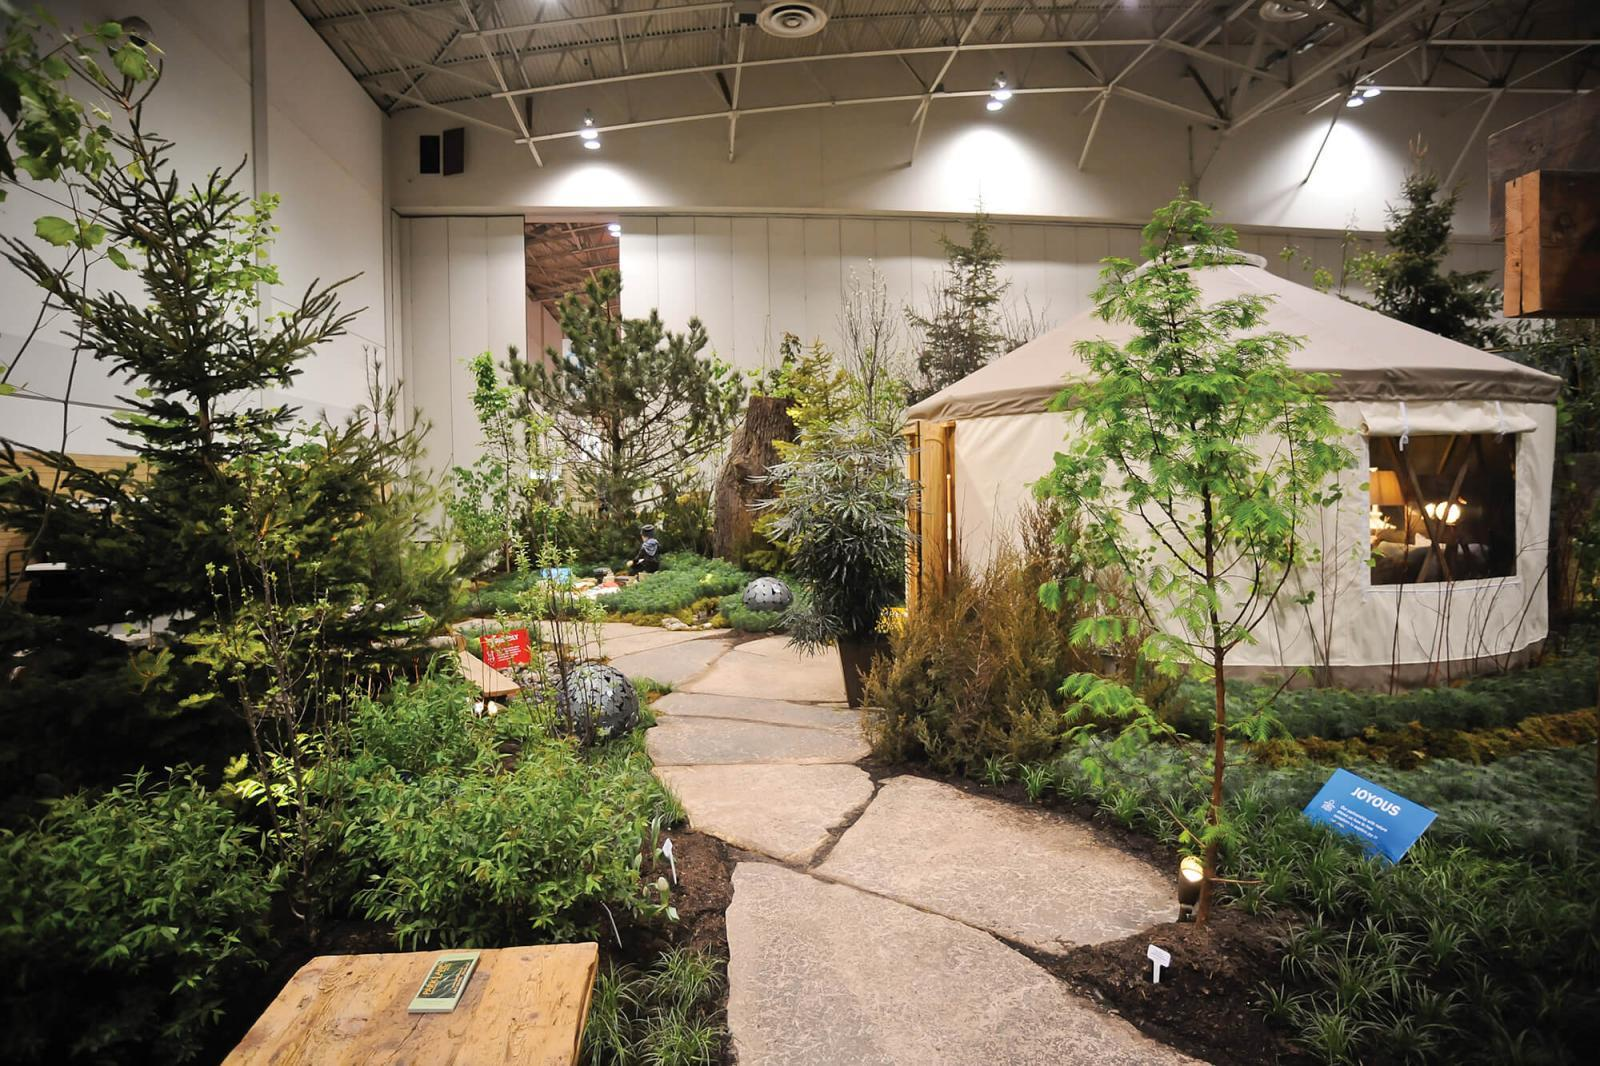 Ever thought about taking on the challenge of building a garden at Canada Blooms? A call has gone out for garden builders at Canada's largest flower and garden festival.